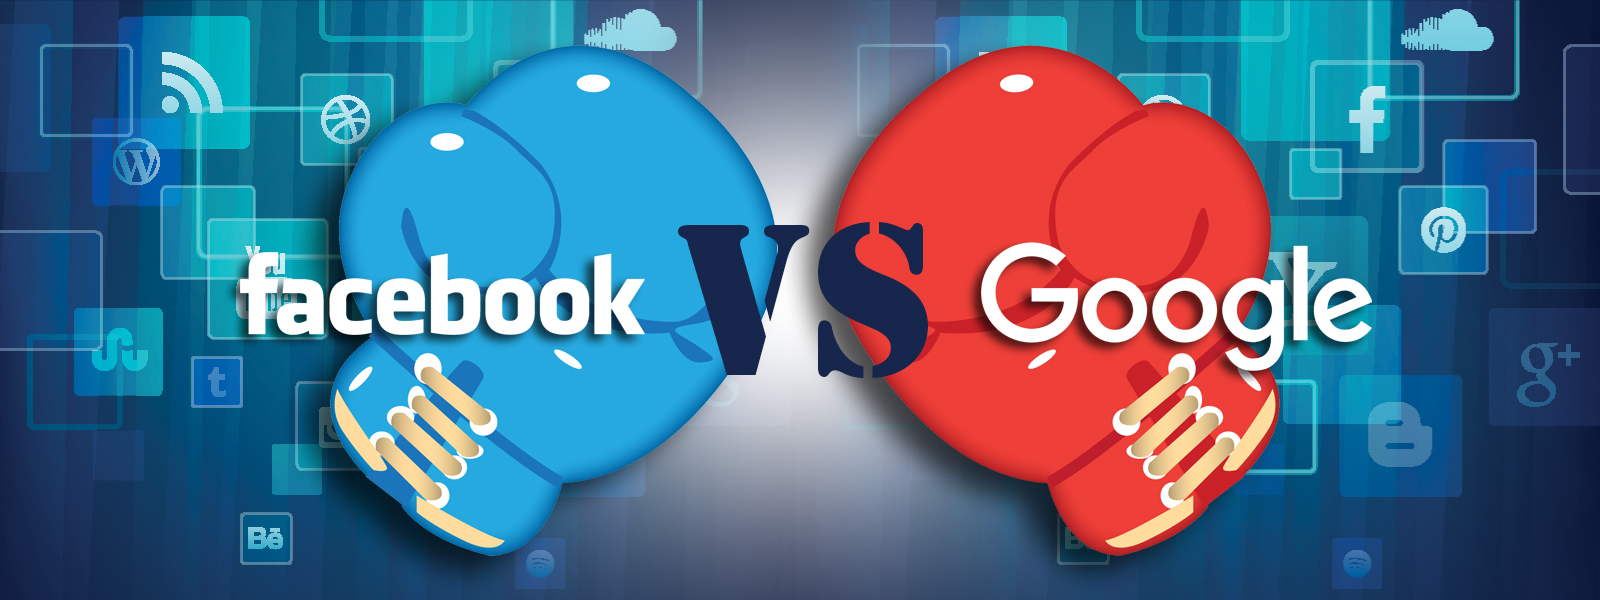 fb_vs_google_cover